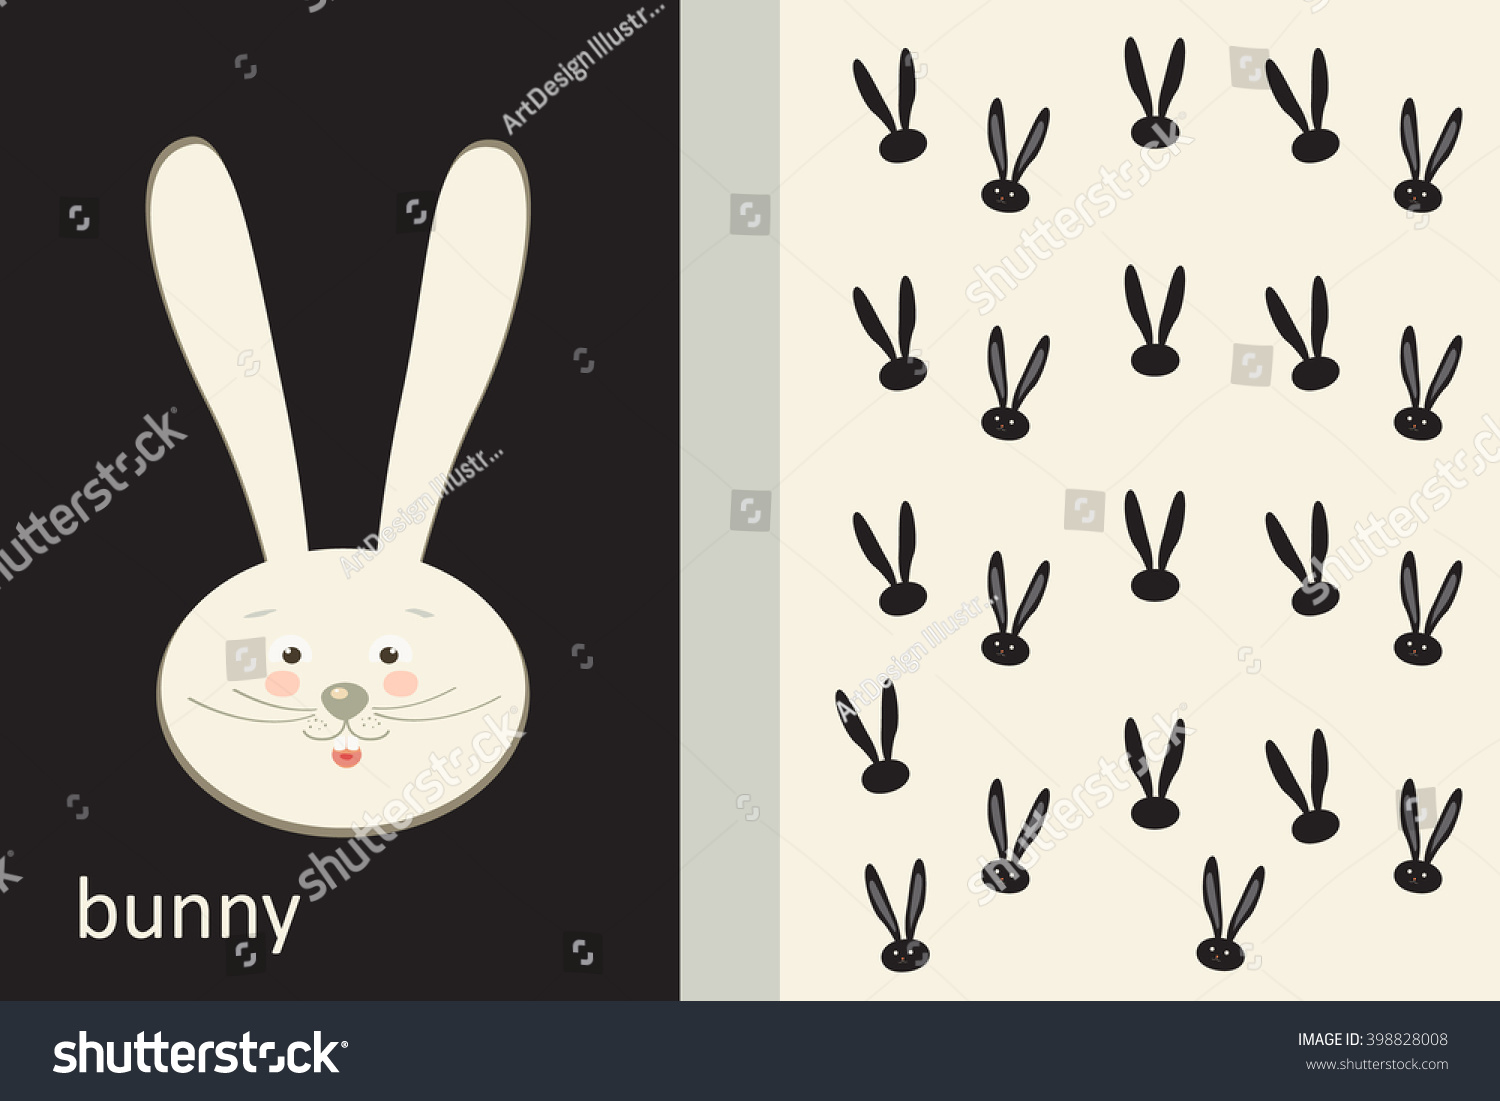 Rabbit invitation card design 2017 moon stock vector 2018 rabbit invitation card design 2017 moon festival flyer vector easter holiday template with stopboris Images